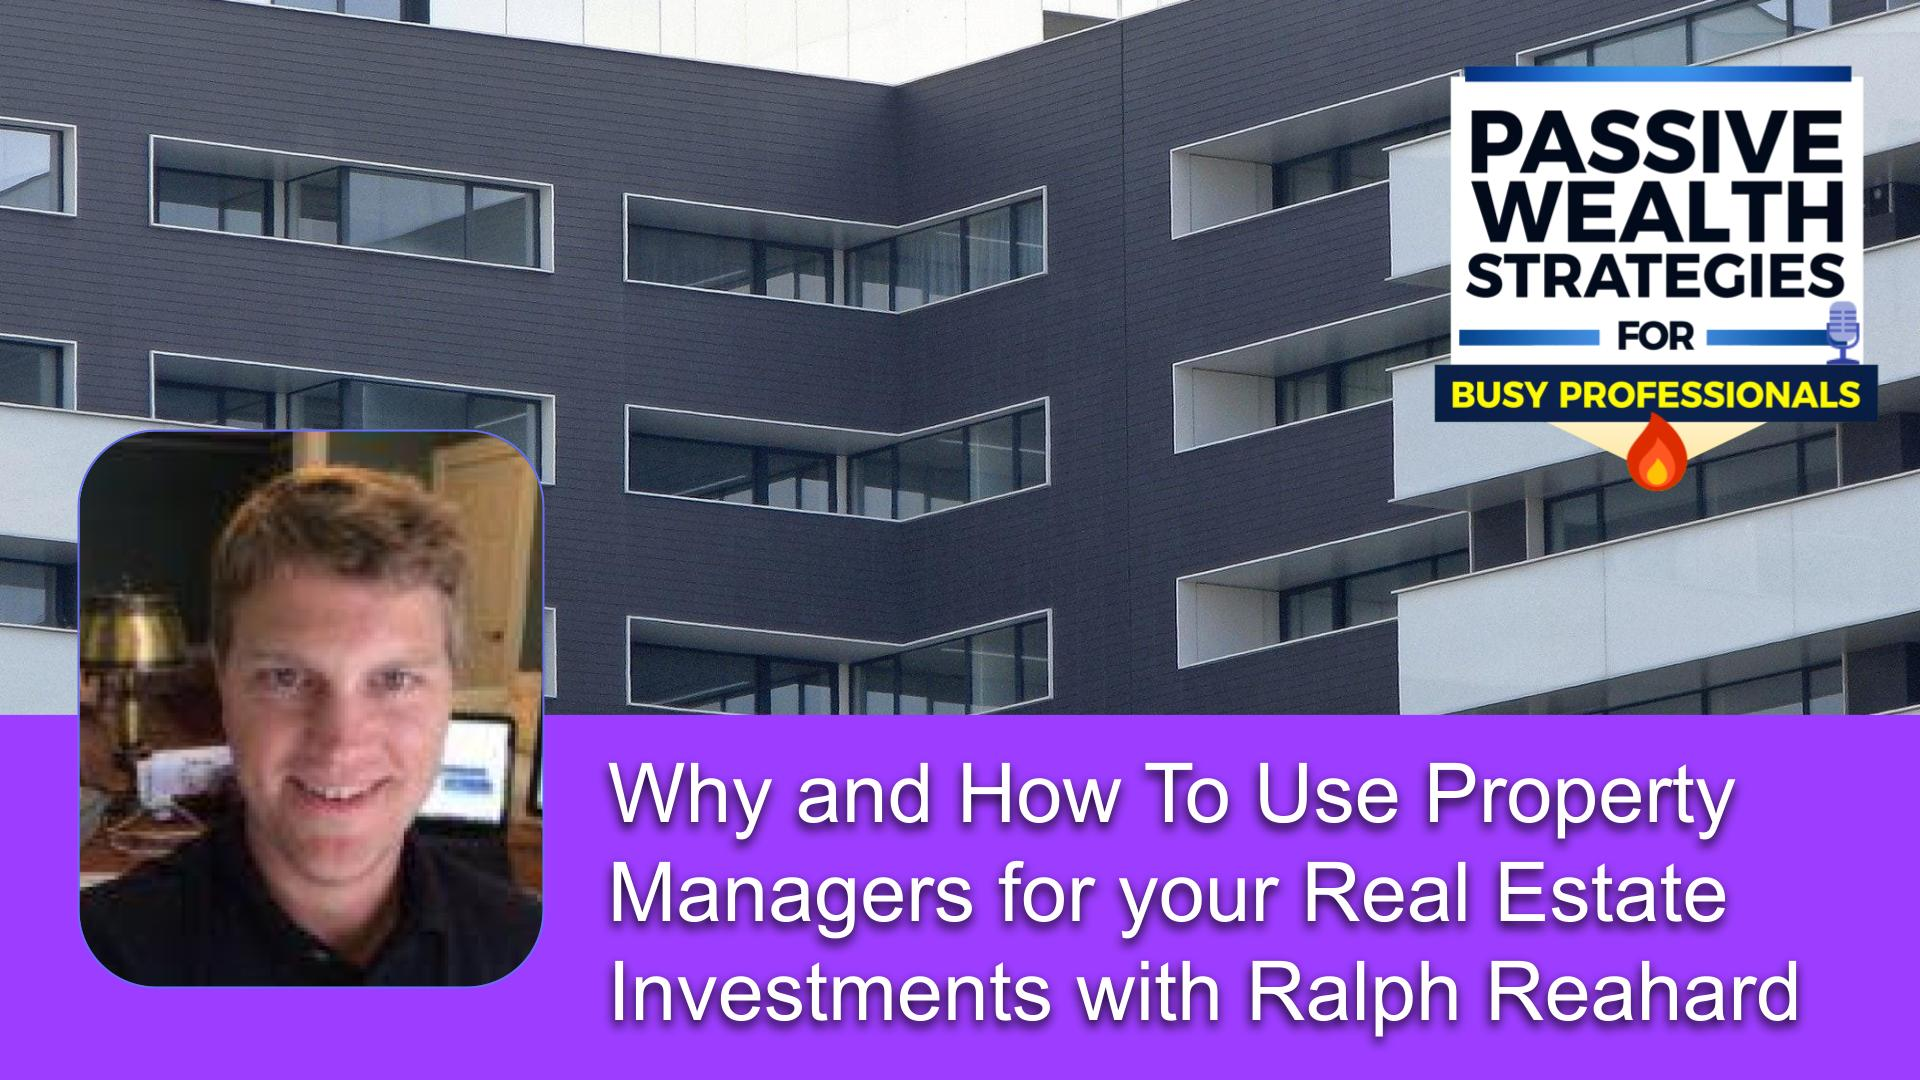 174 Why and How To Use Property Managers for your Real Estate Investments with Ralph Reahard